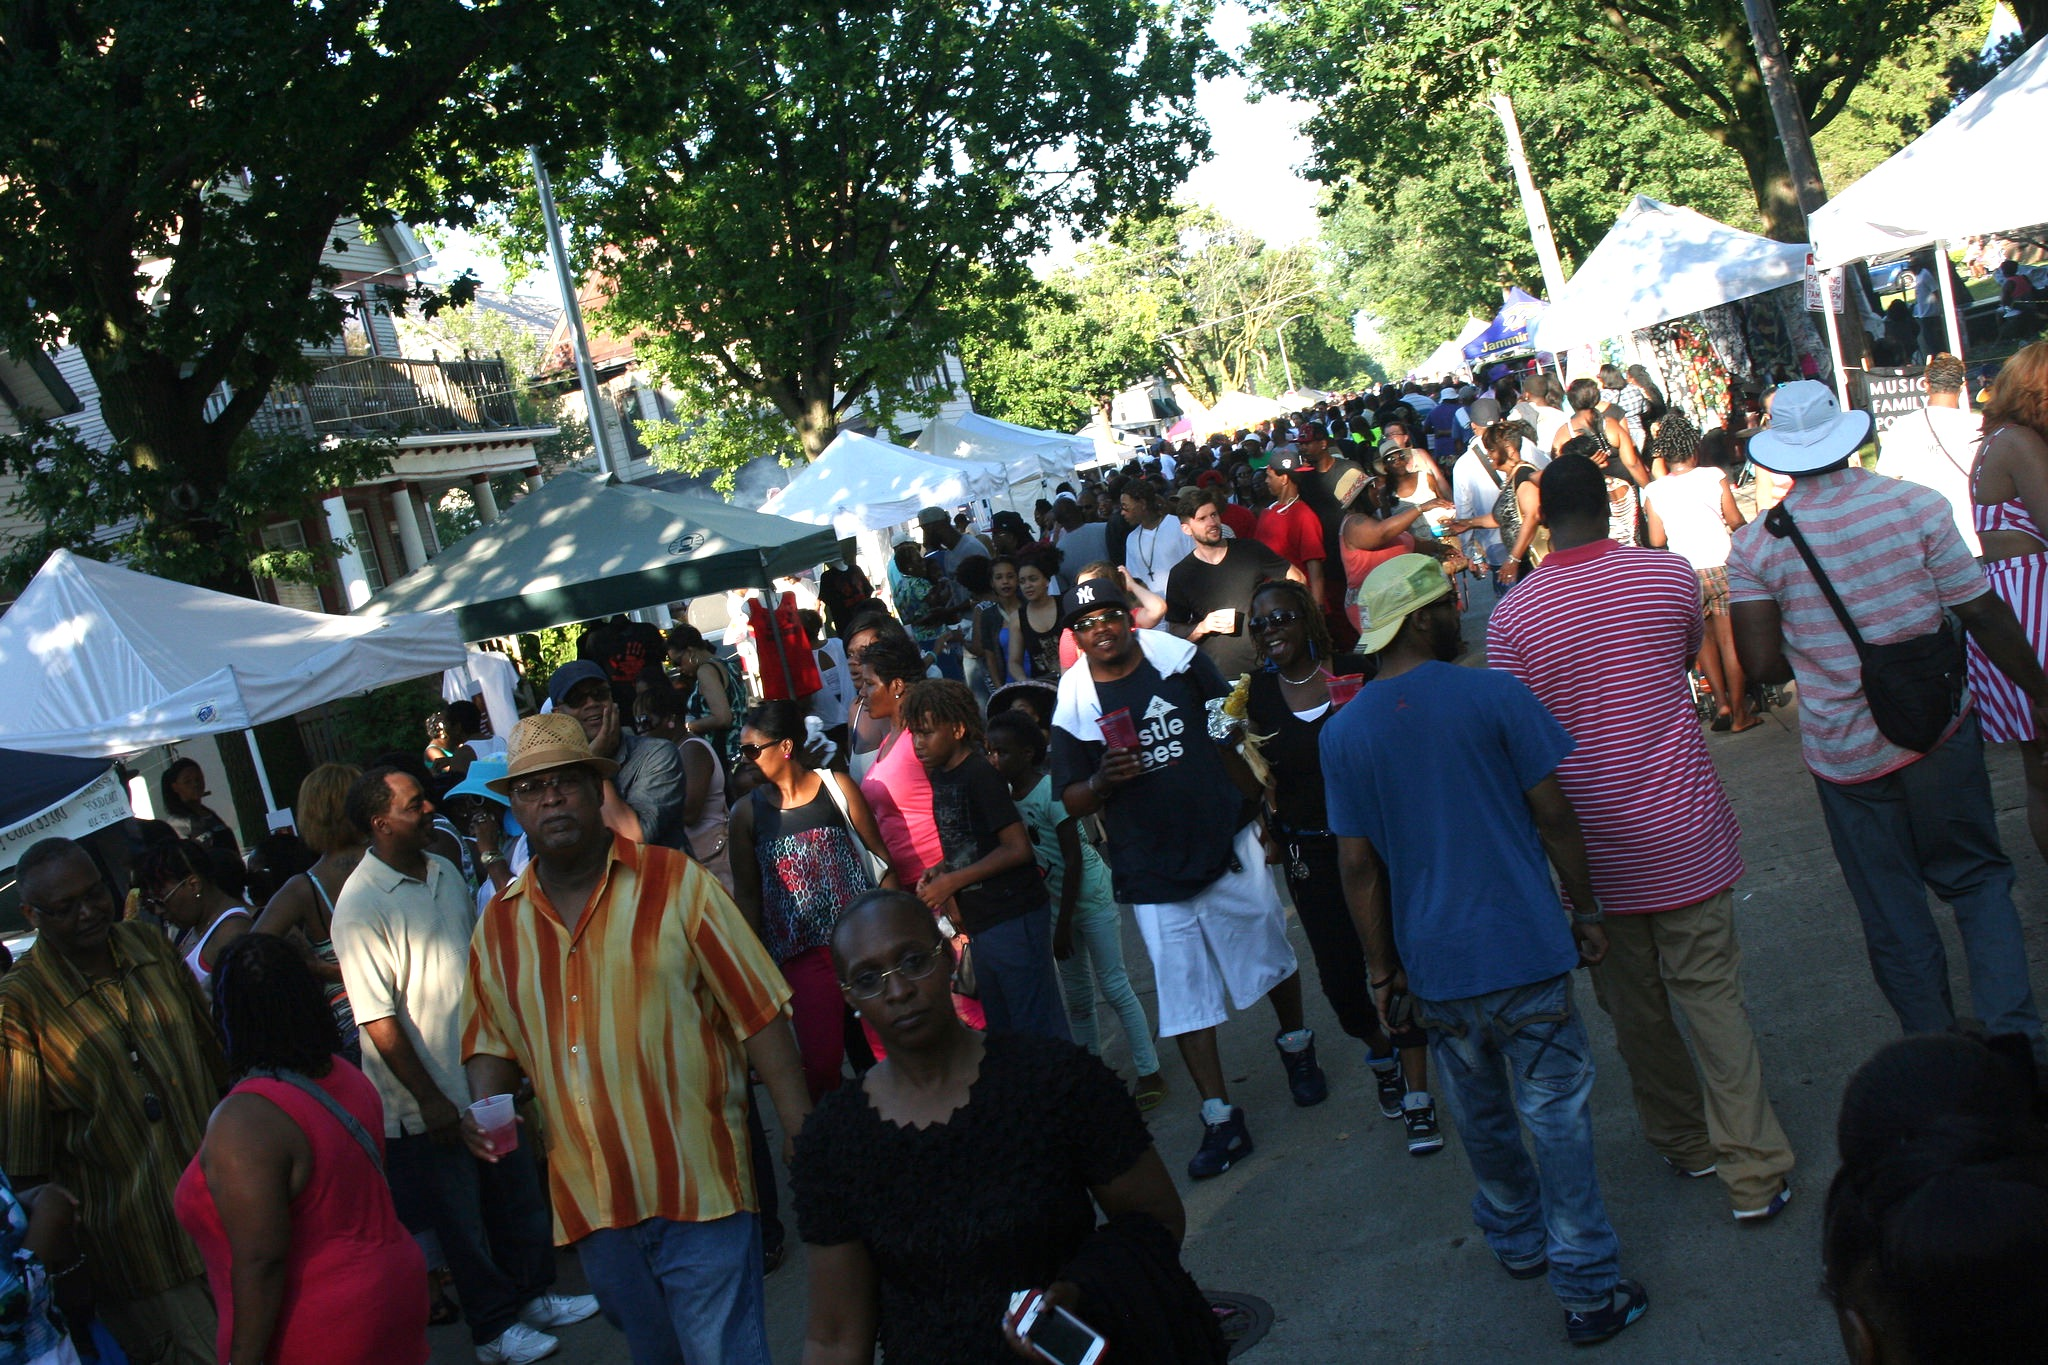 Garfield Avenue Festival drew large crowds last year. (Photo by Jabril Faraj)